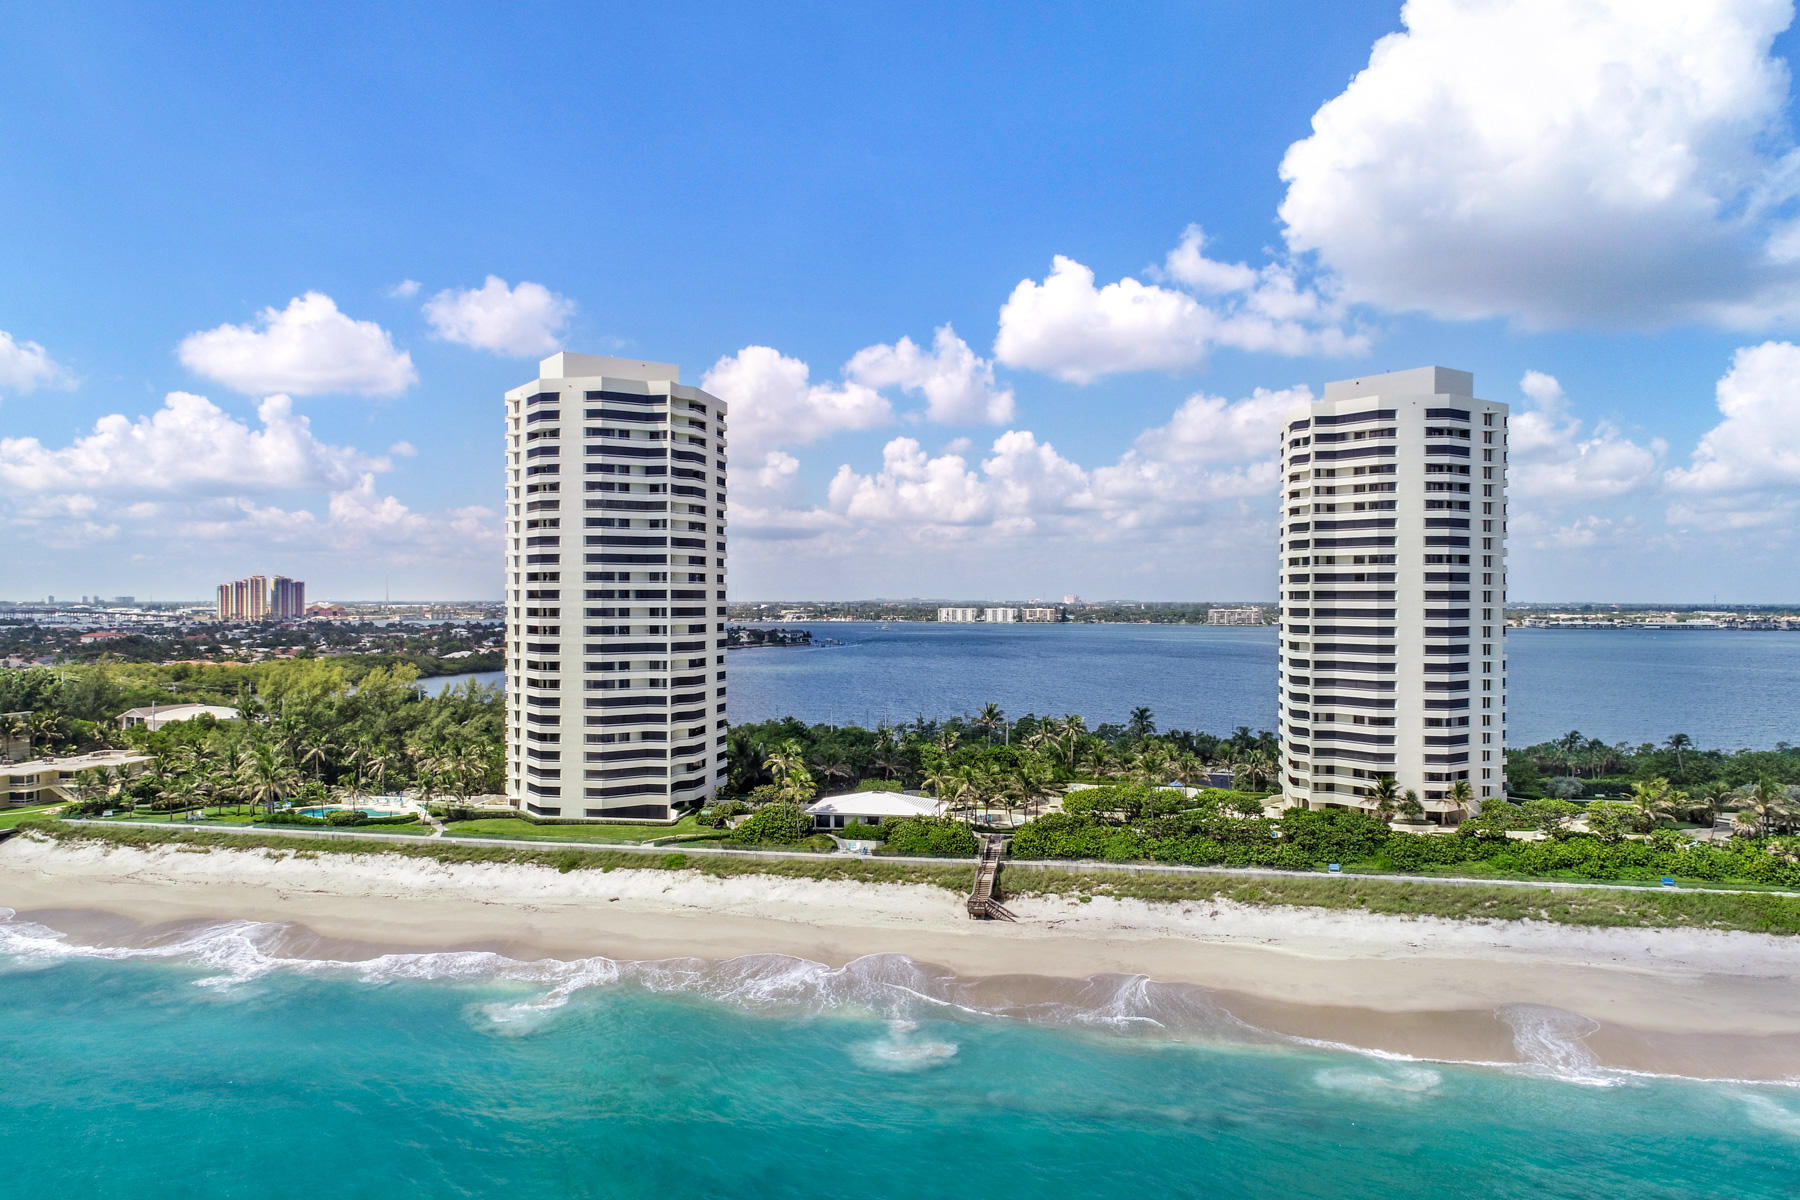 Outstanding views of the ocean and intracoastal waterway in this lovely 2/2 at Seawinds.  Light, bright and perfectly clean! Enjoy the sunrise in the morning from your double wrap around balconies, and the starlit nights and orange sunsets at night,  The ocean views are magnificent.  Being high enough in the building to look clearly to the bottom of the ocean, enables you to see all the marine life at the beach.  Kept in pristine condition, it shows like a dream.  Lovely white cabinets in the kitchen with Corian countertops,  white tile throughout the living areas.  An abundance of built ins. Two large bedrooms, en-suite laundry and tub,  and garage parking under the building. Electric vehicle charging stations are available.